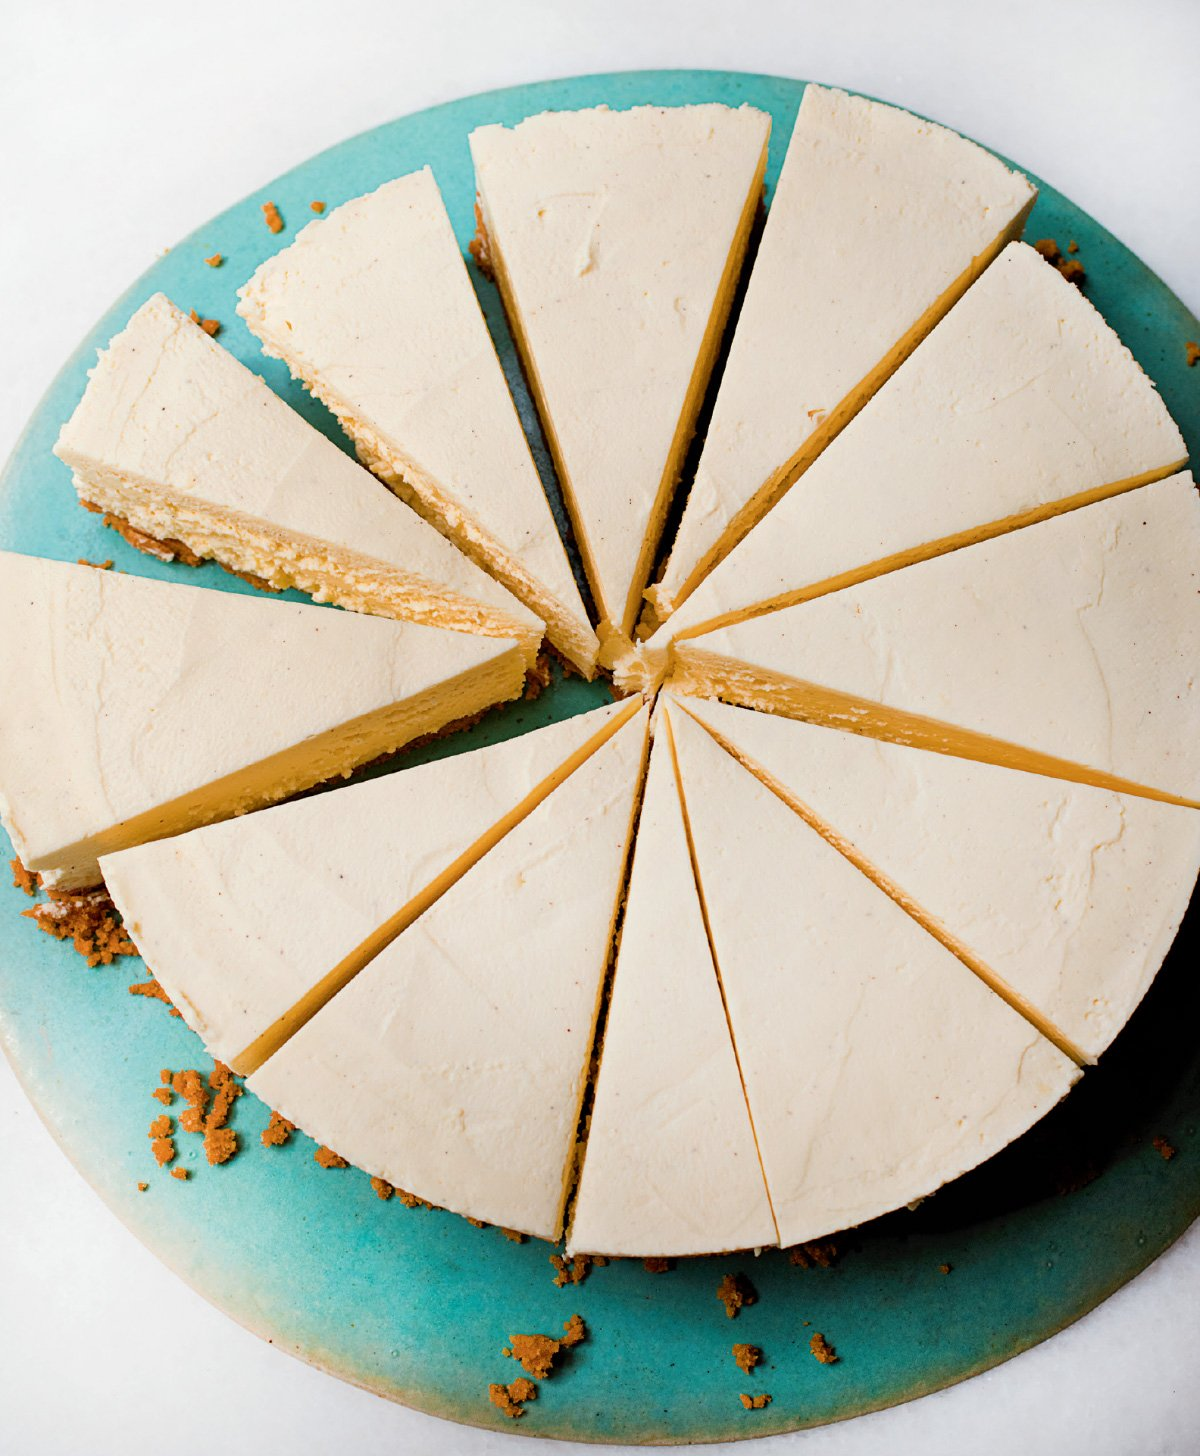 White Chocolate Cheesecake Nigella S Recipes Nigella Lawson